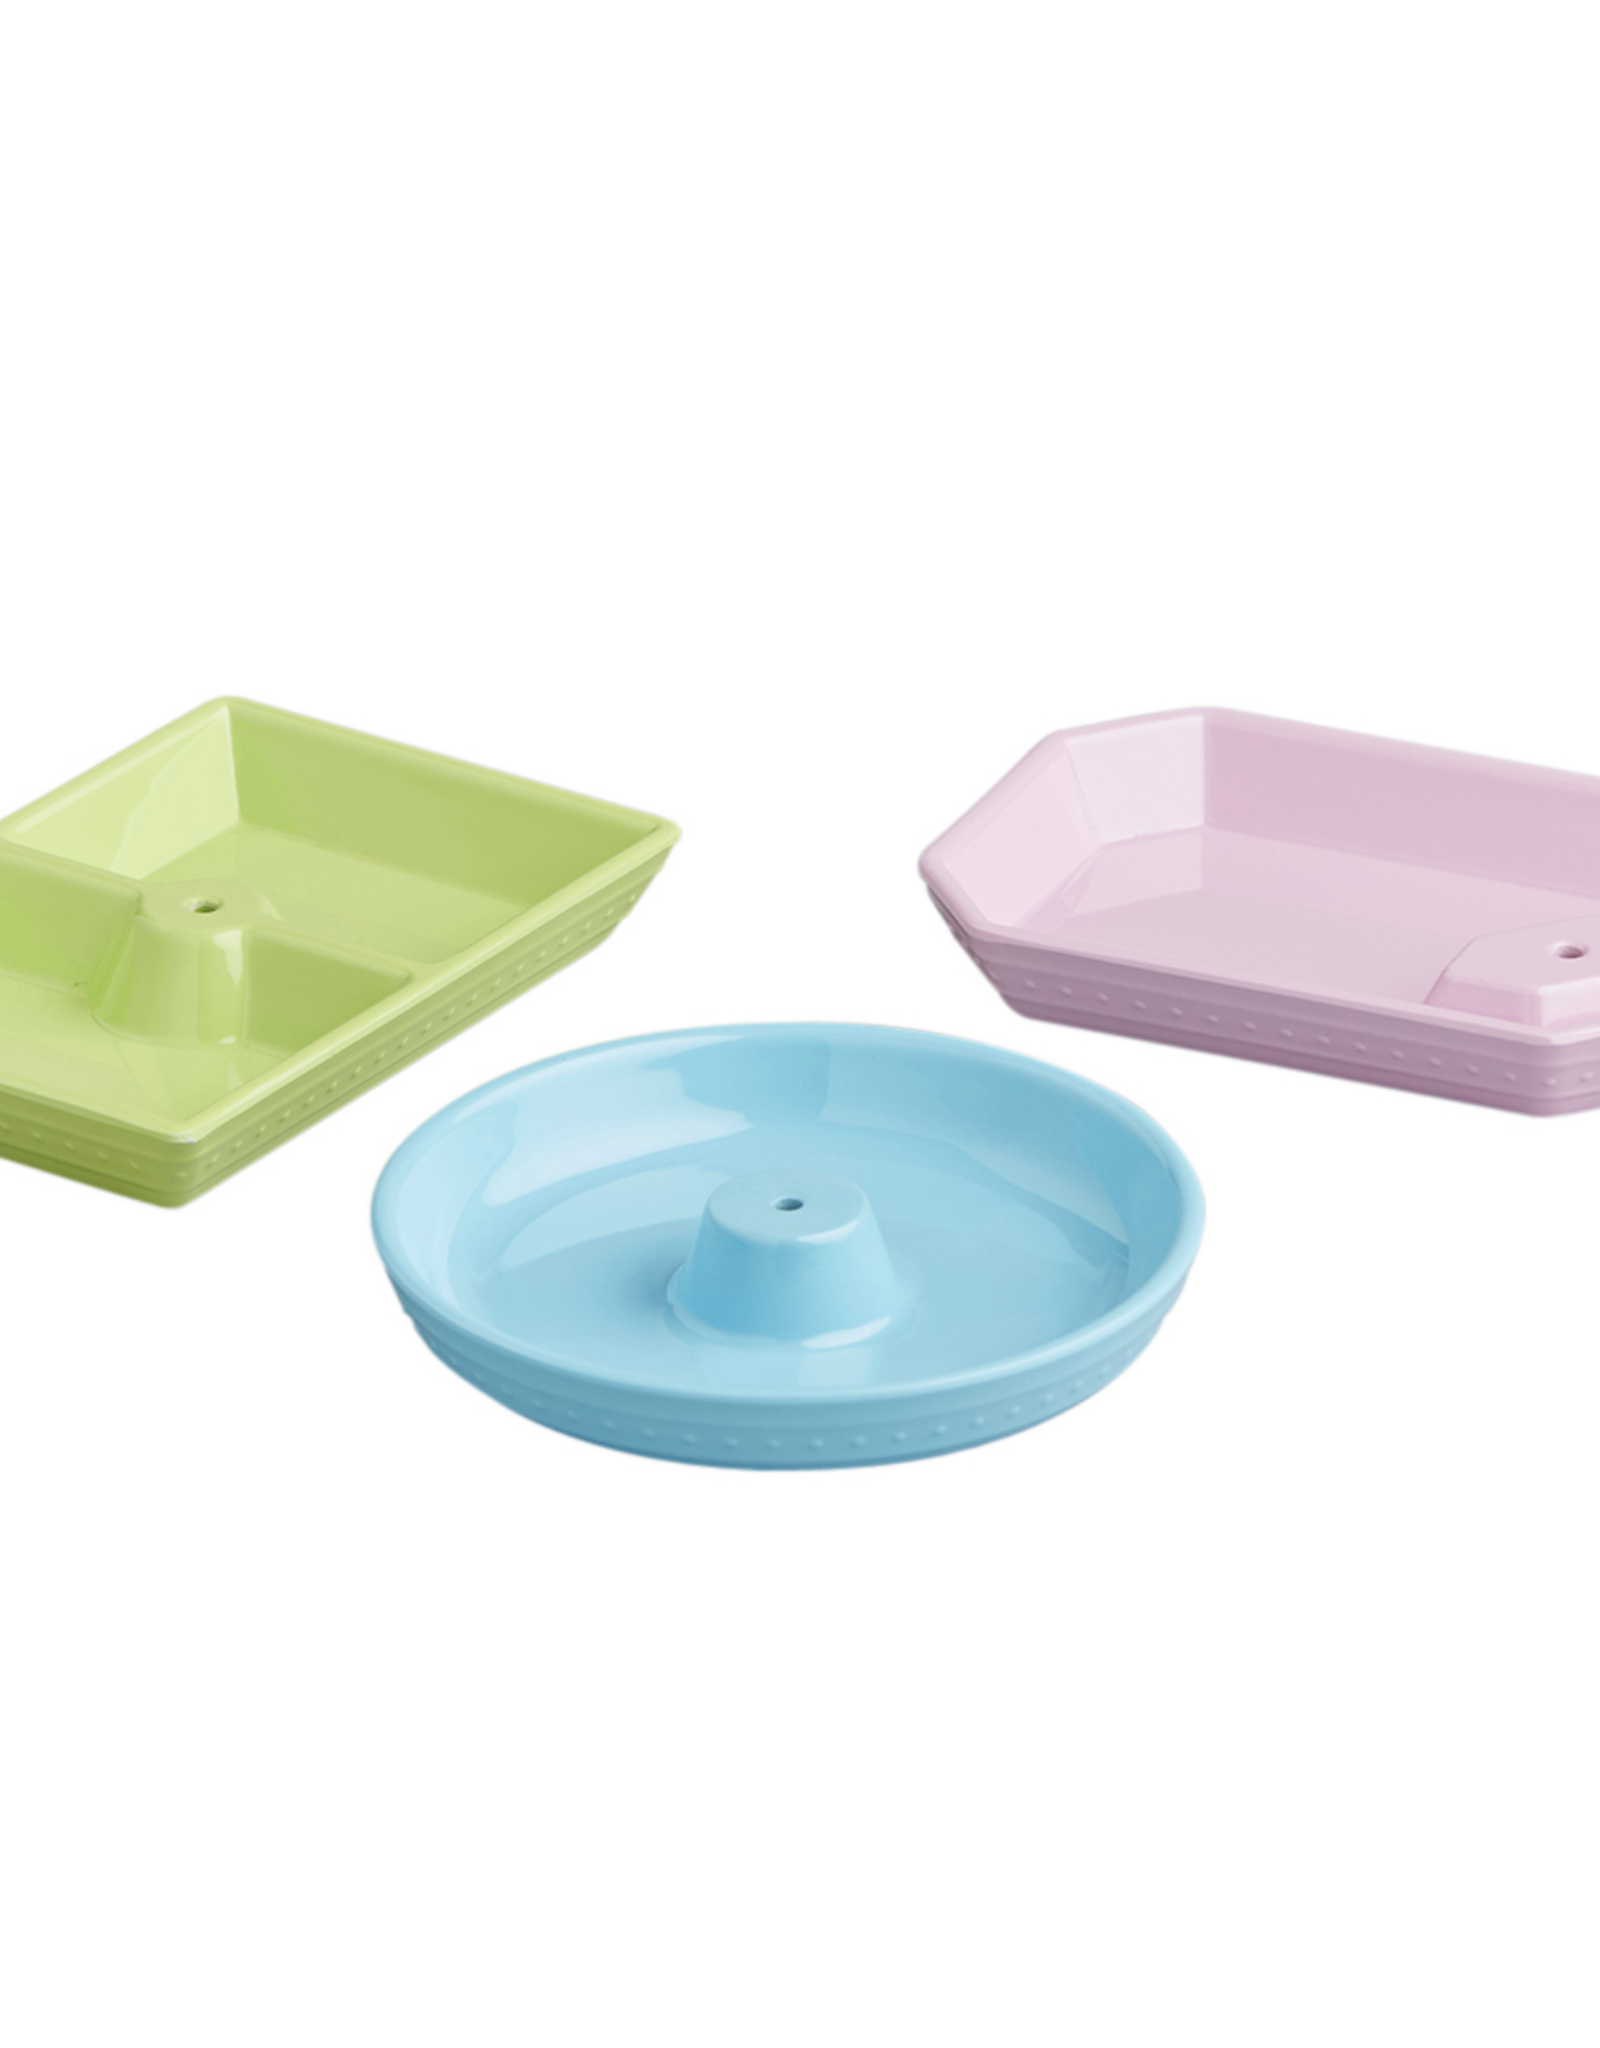 Nora Fleming Nora Fleming - Dainty Dishes (set of 3)